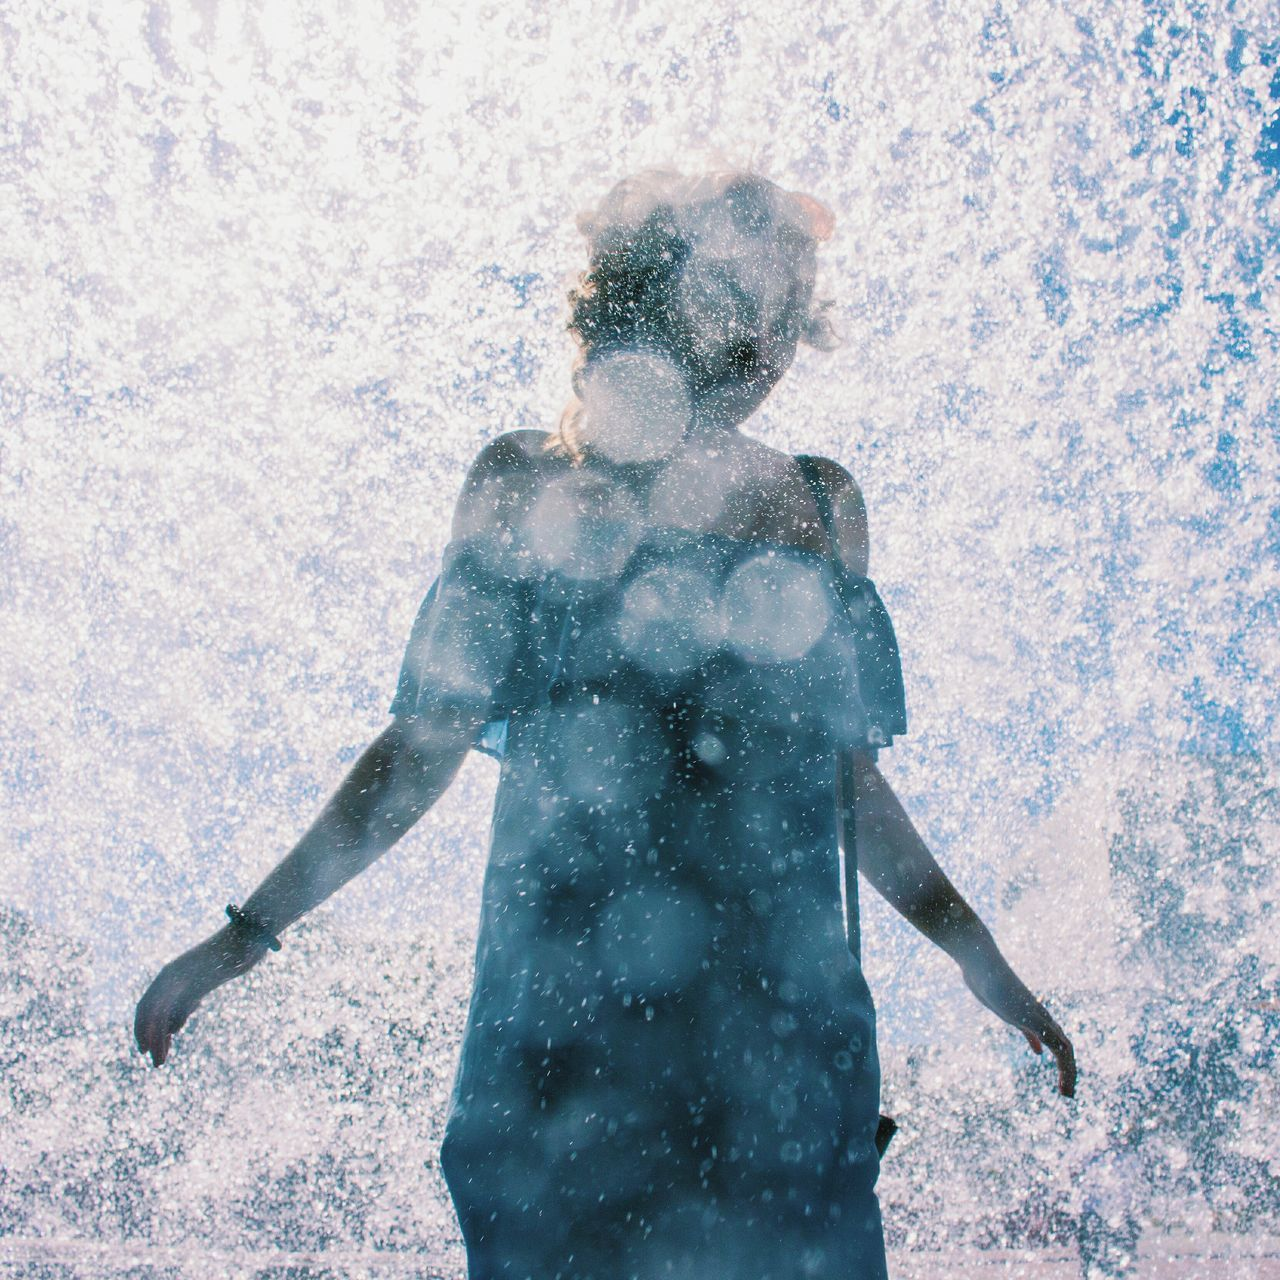 Dreams over water summer EyeEm Selects people outdoors women young adult The Week On Eyem portrait day Portugal young women waterdrops water - collection waterfall Water droplets water on lens effects with water magical moments magicalfeeling Breathing Space The Week on EyeEm